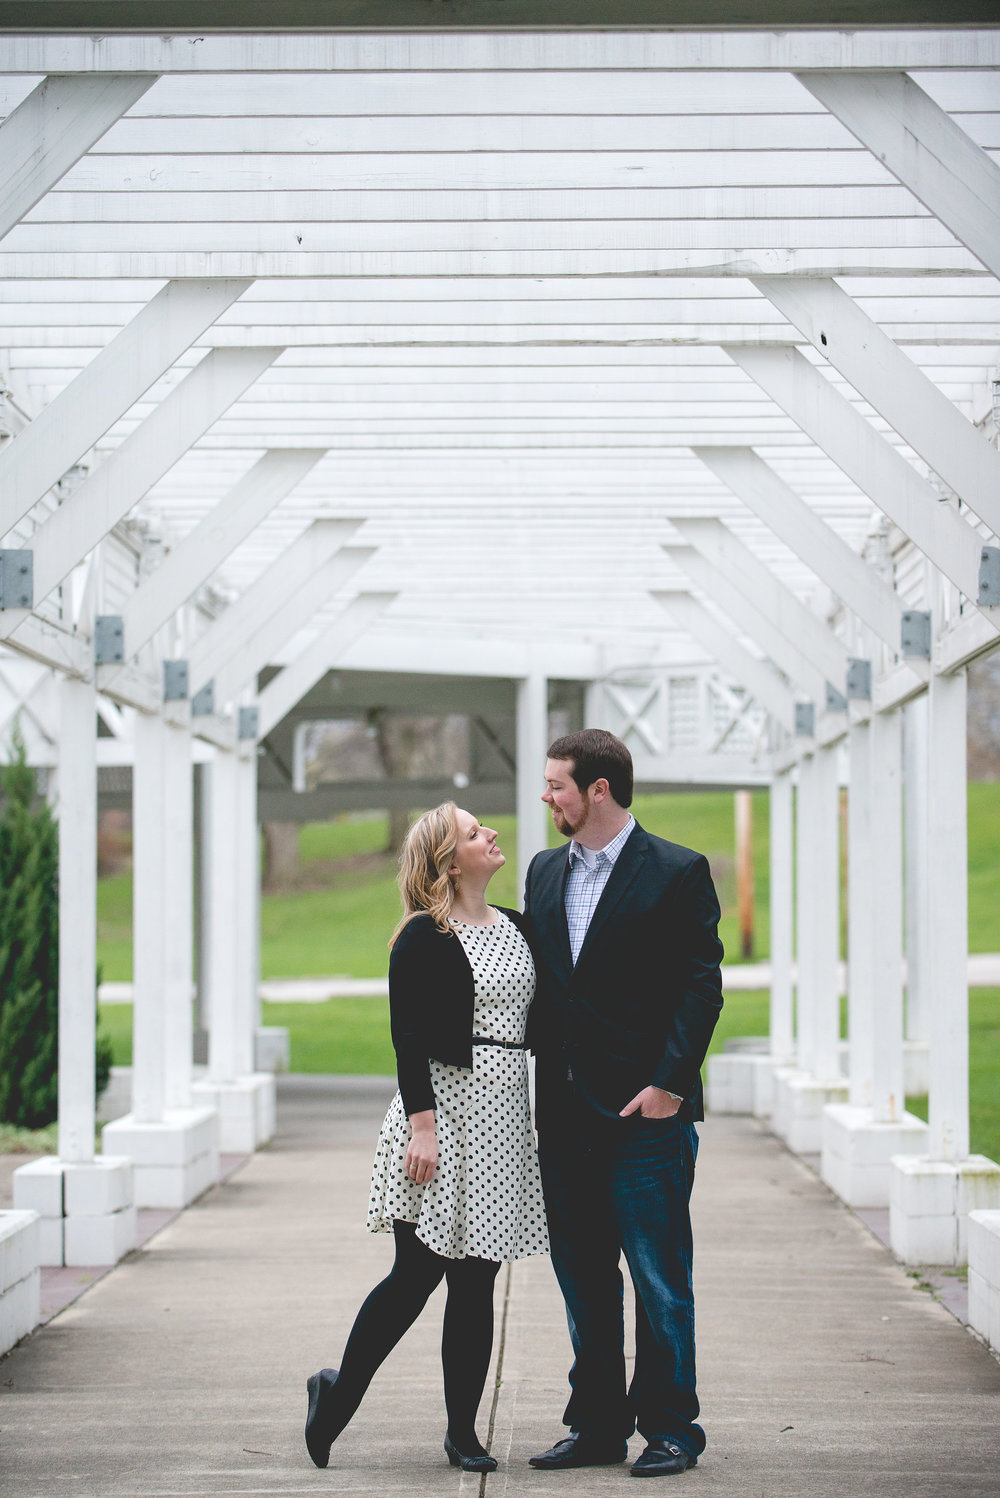 Colleen + Michael |Engagement Shoot